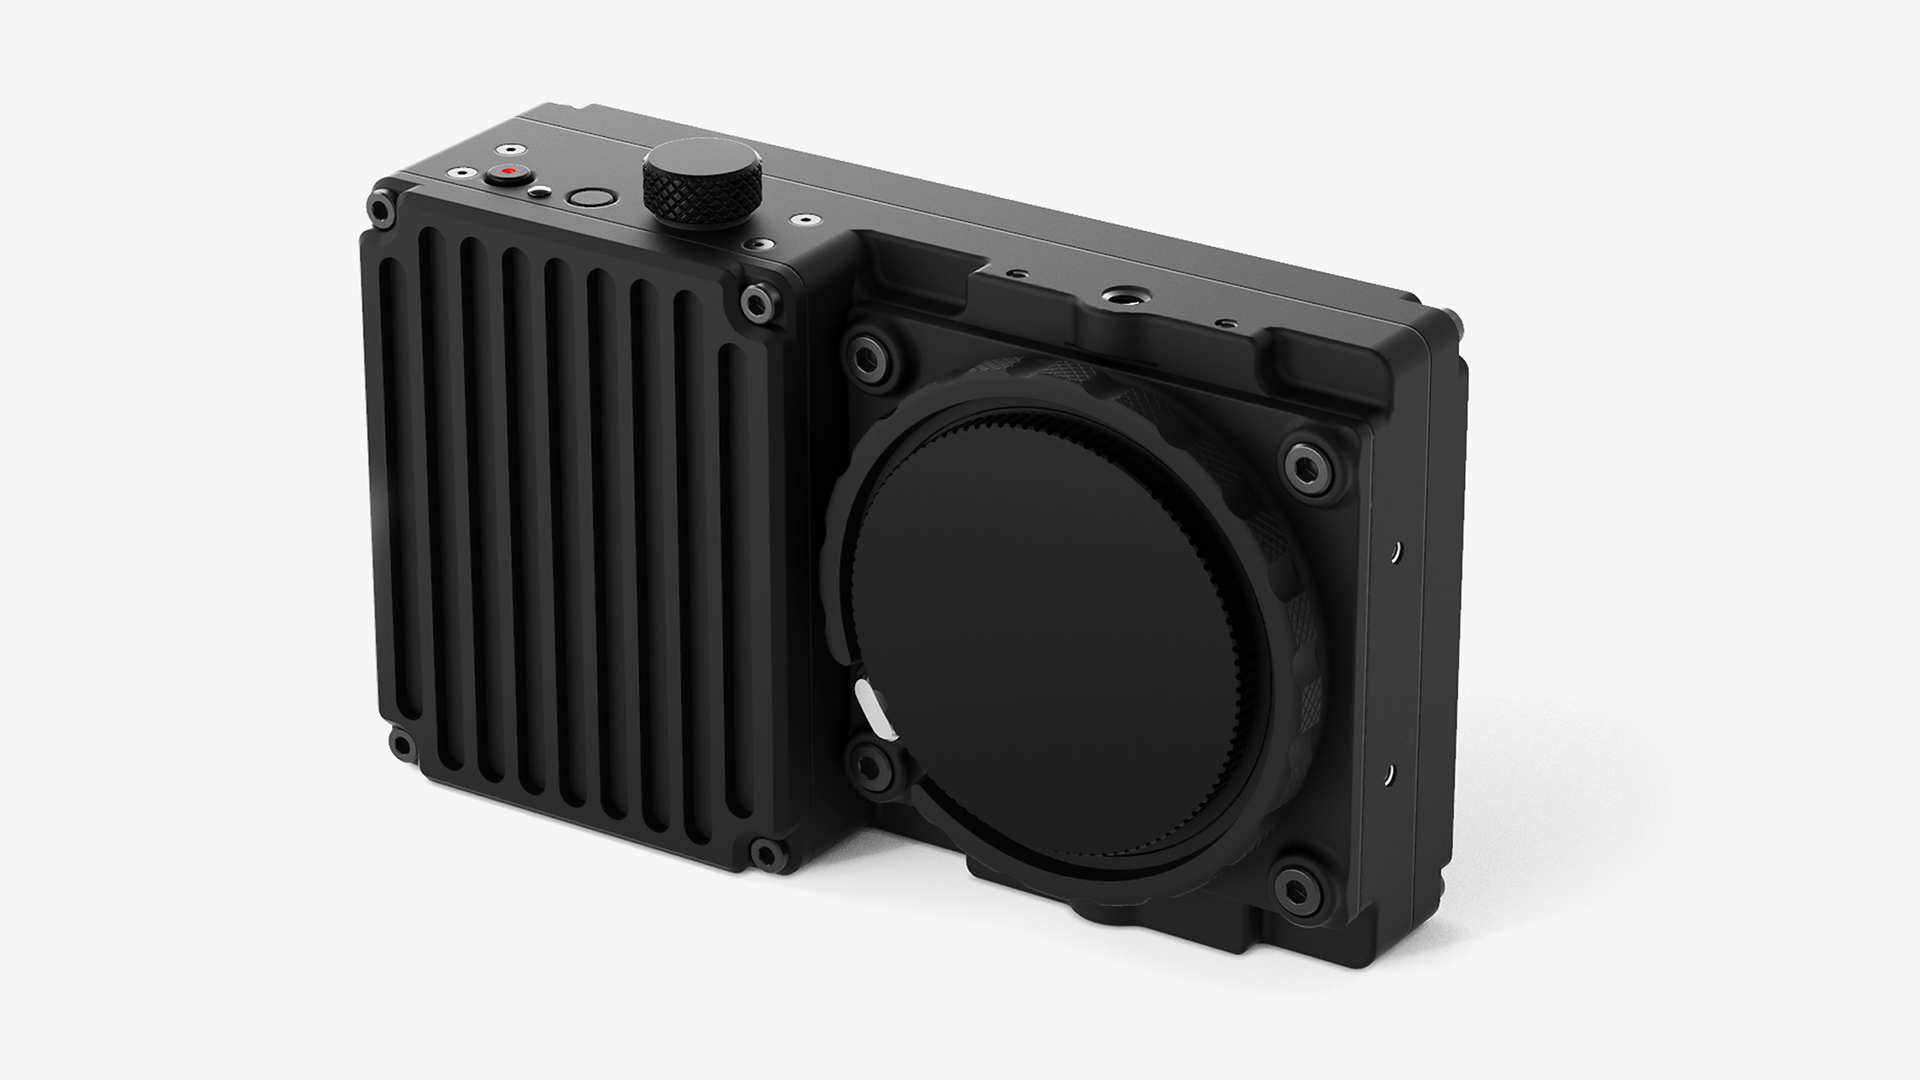 Freefly Wave high speed slow motion camera. Image: Freefly Systems.